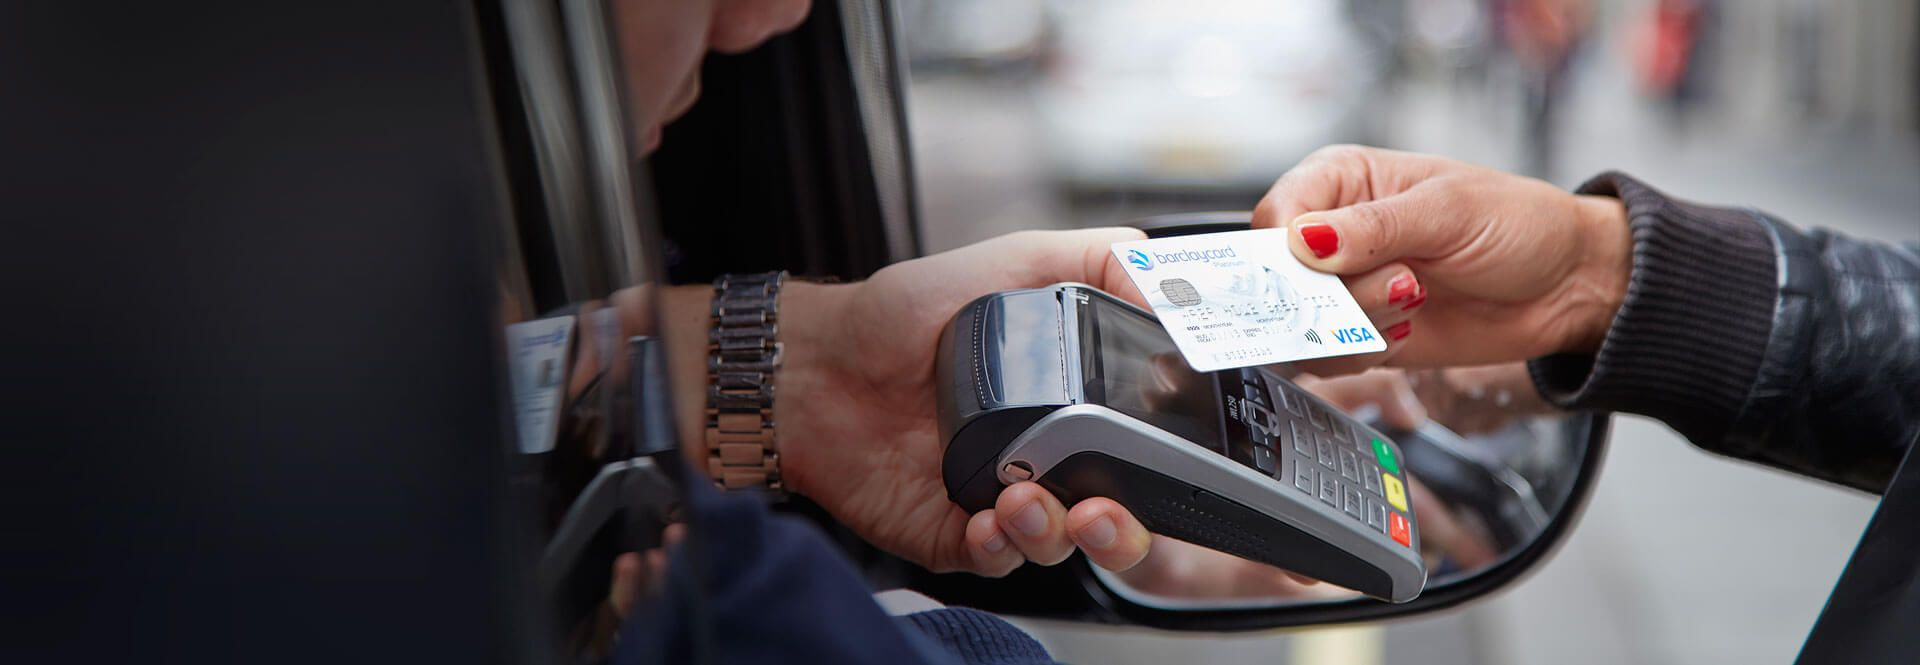 Mobile card machines | POS GRPS | Barclaycard Business